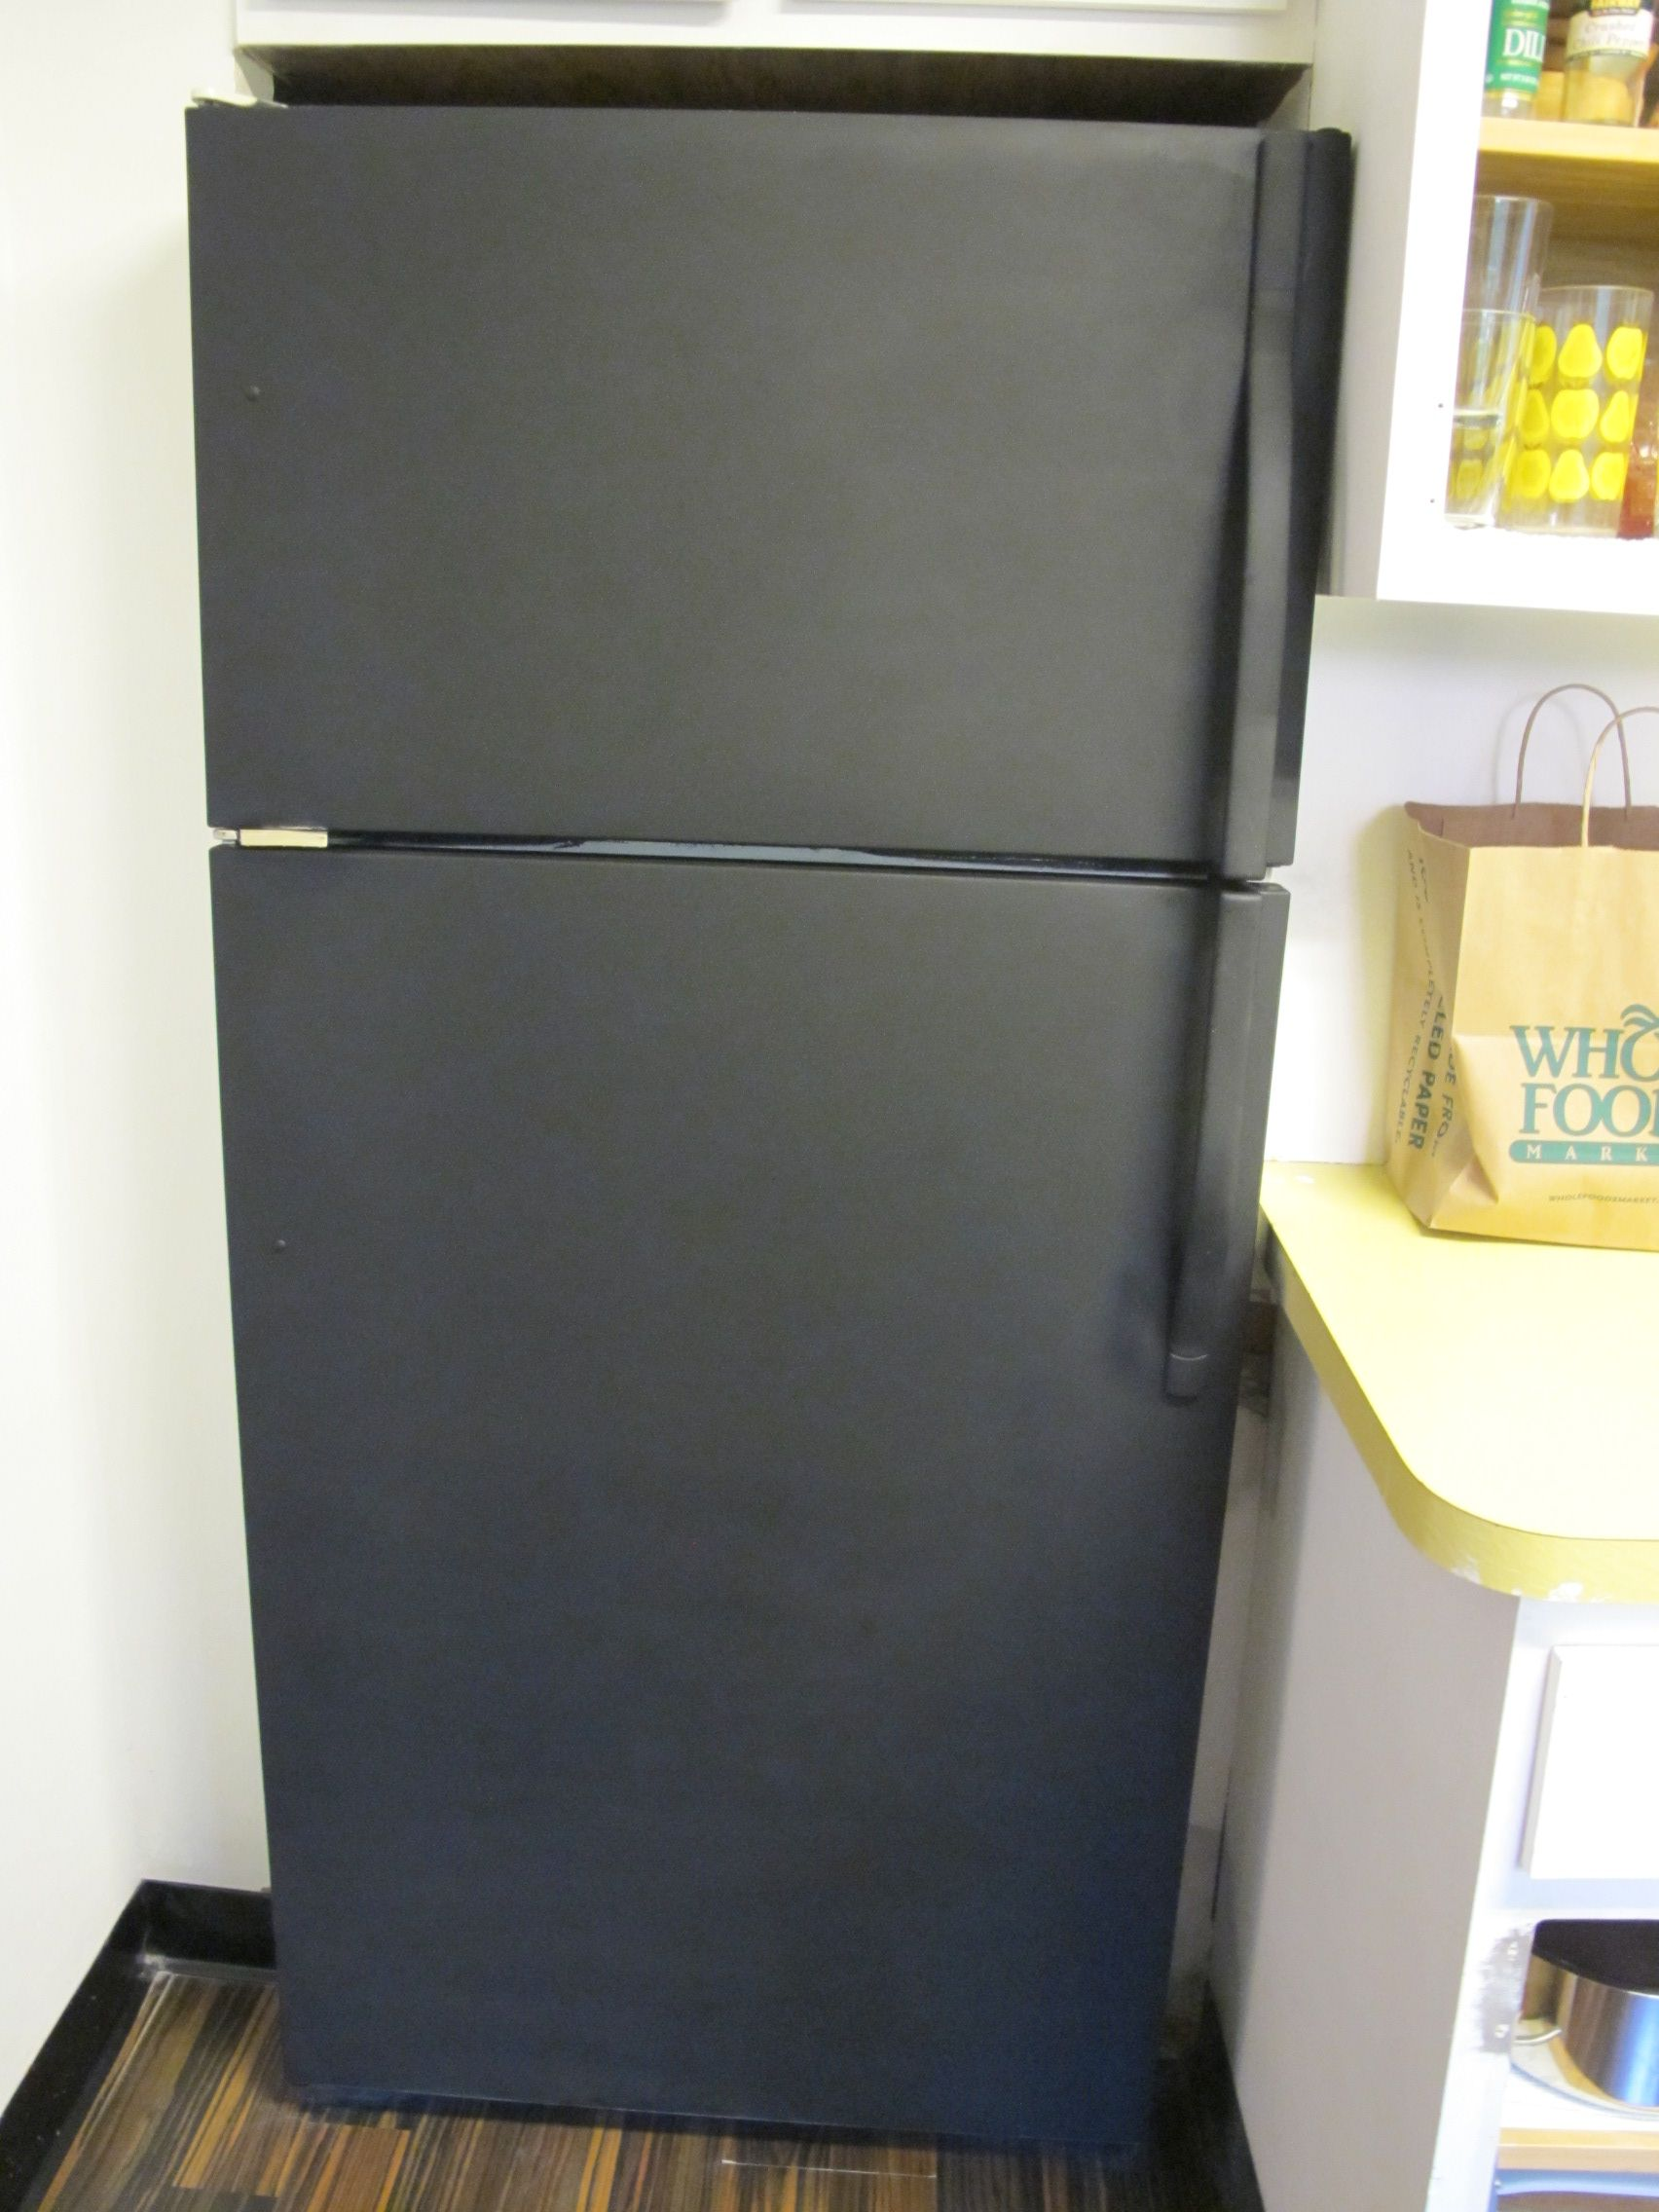 Pinterest Challenge Time Joey And Lana Make A House A Home Chalkboard Fridge Painted Fridge Chalkboard Paint Fridge